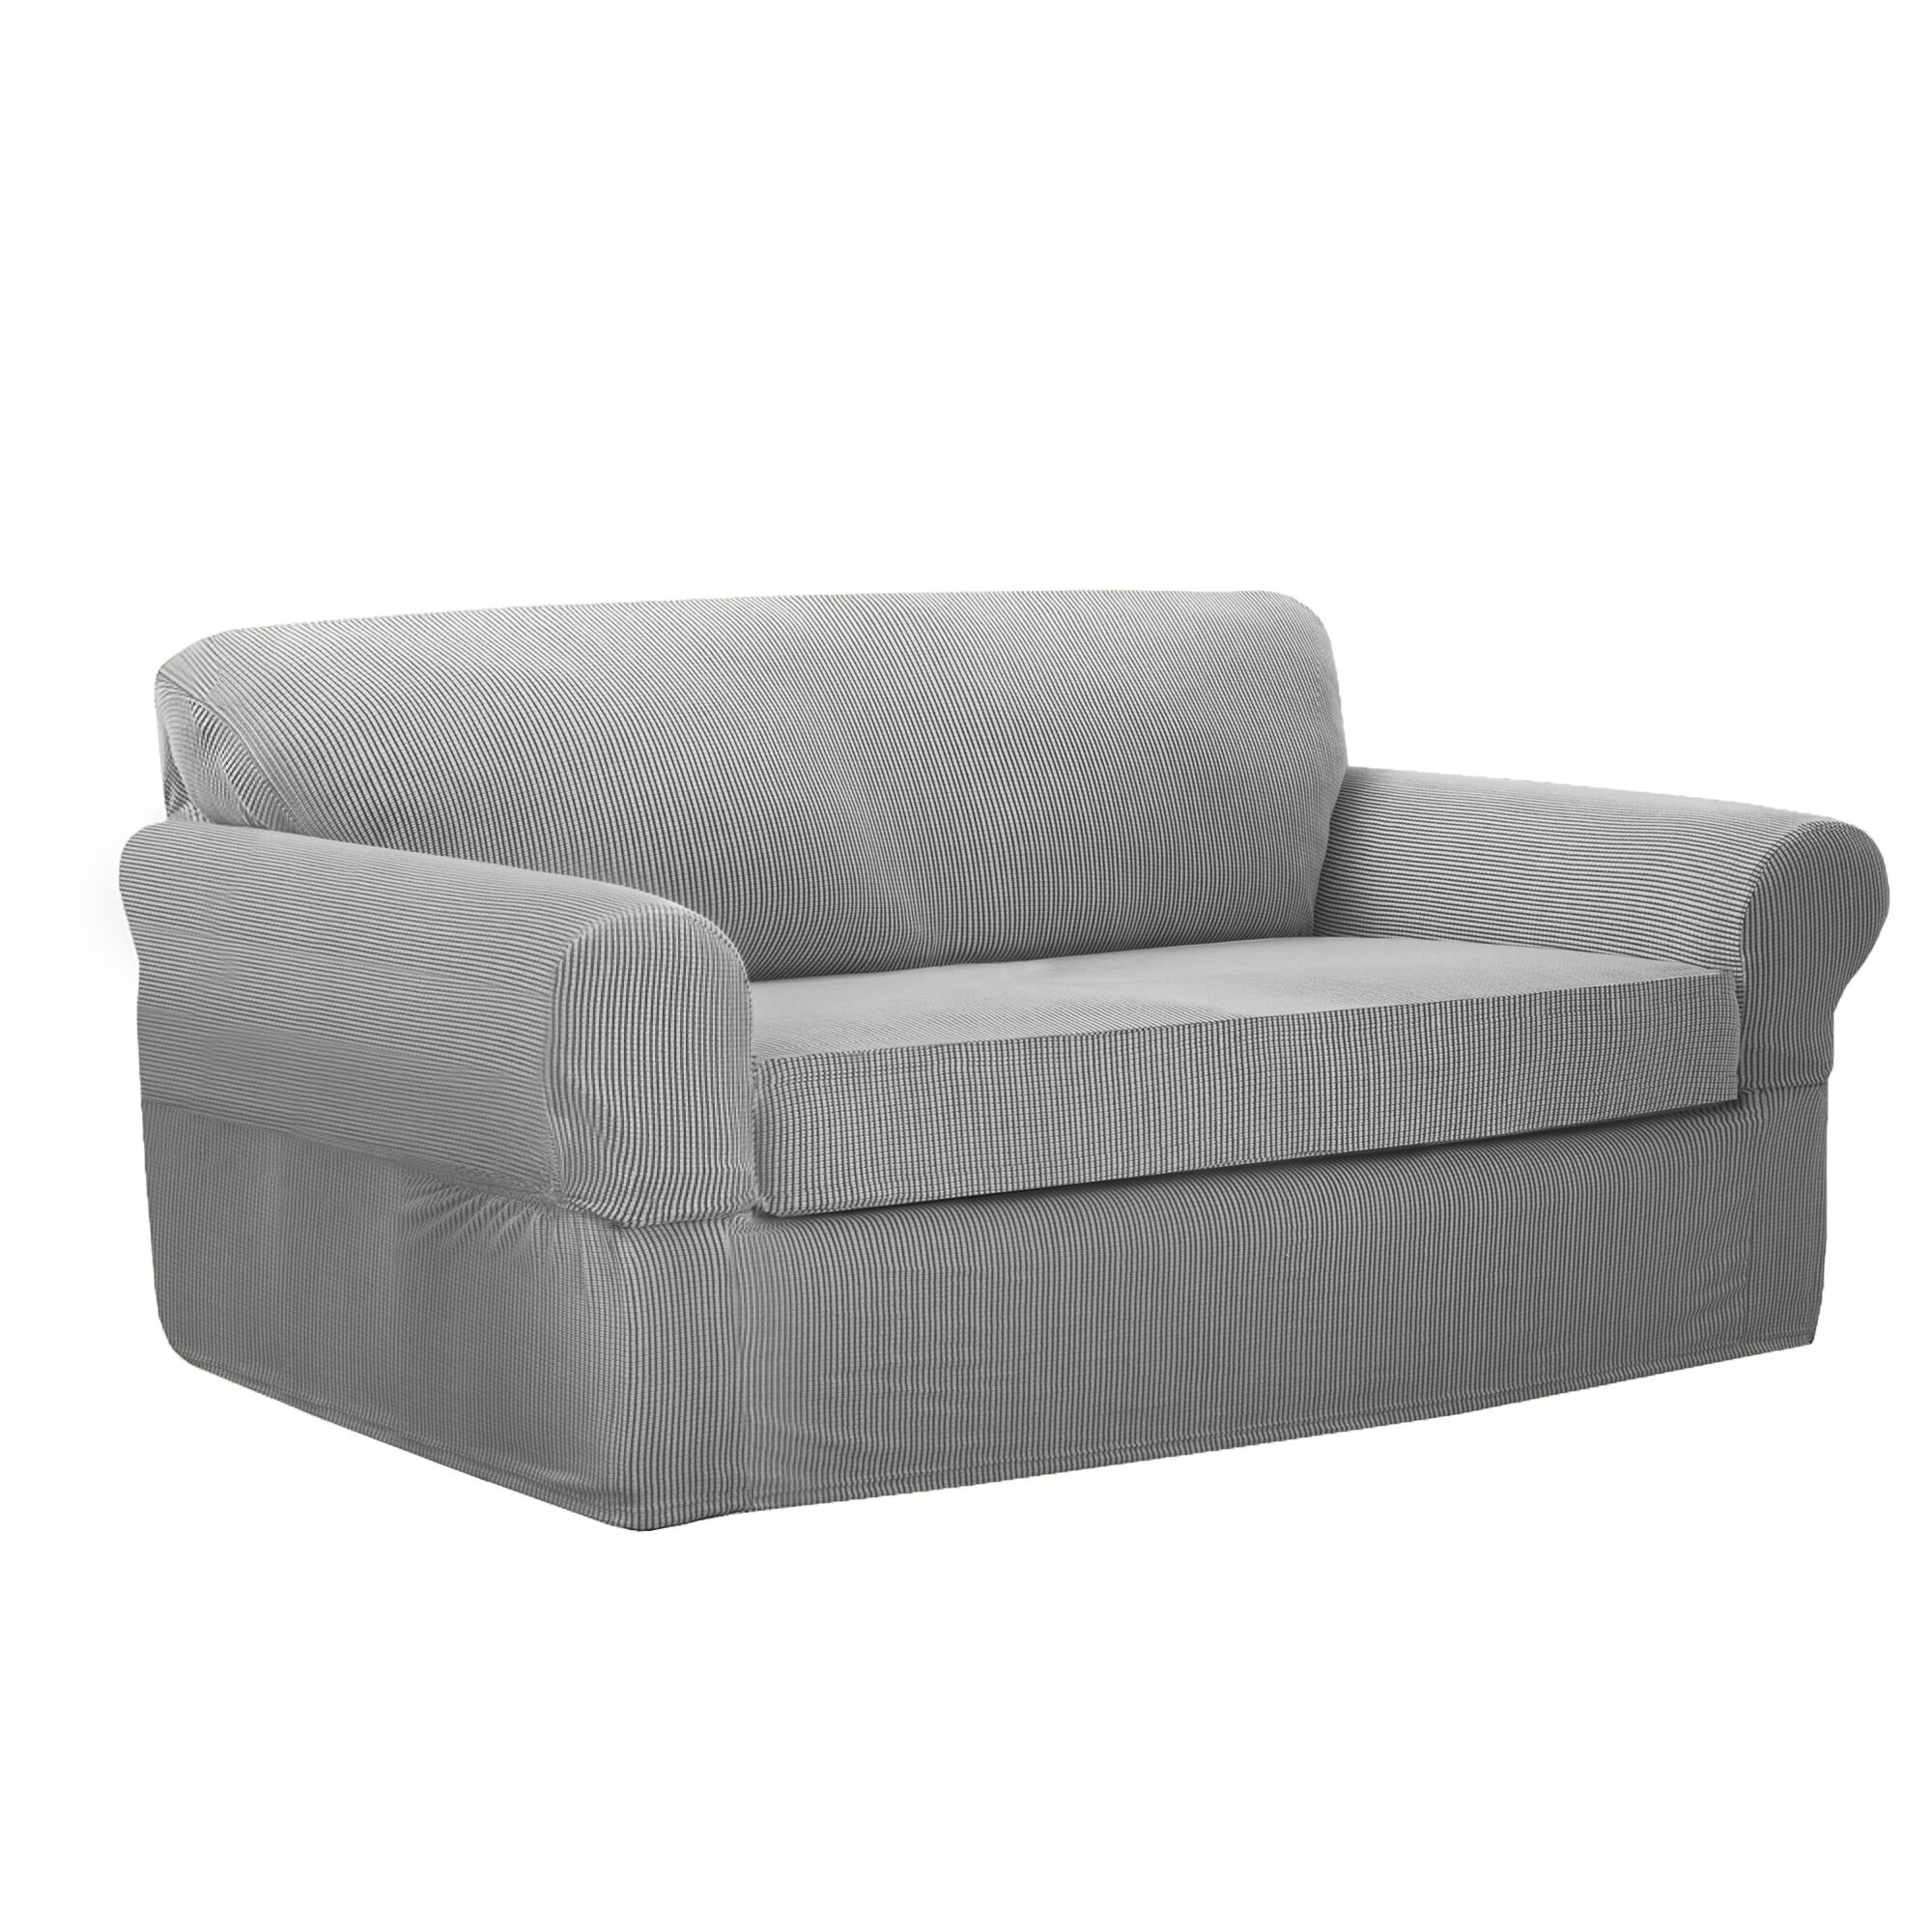 sofa for bug linen furniture couches ottoman and sectional walmart setting target beyond covers bed your perfect couch cover waterpr creating space slipcover bath slipcovers